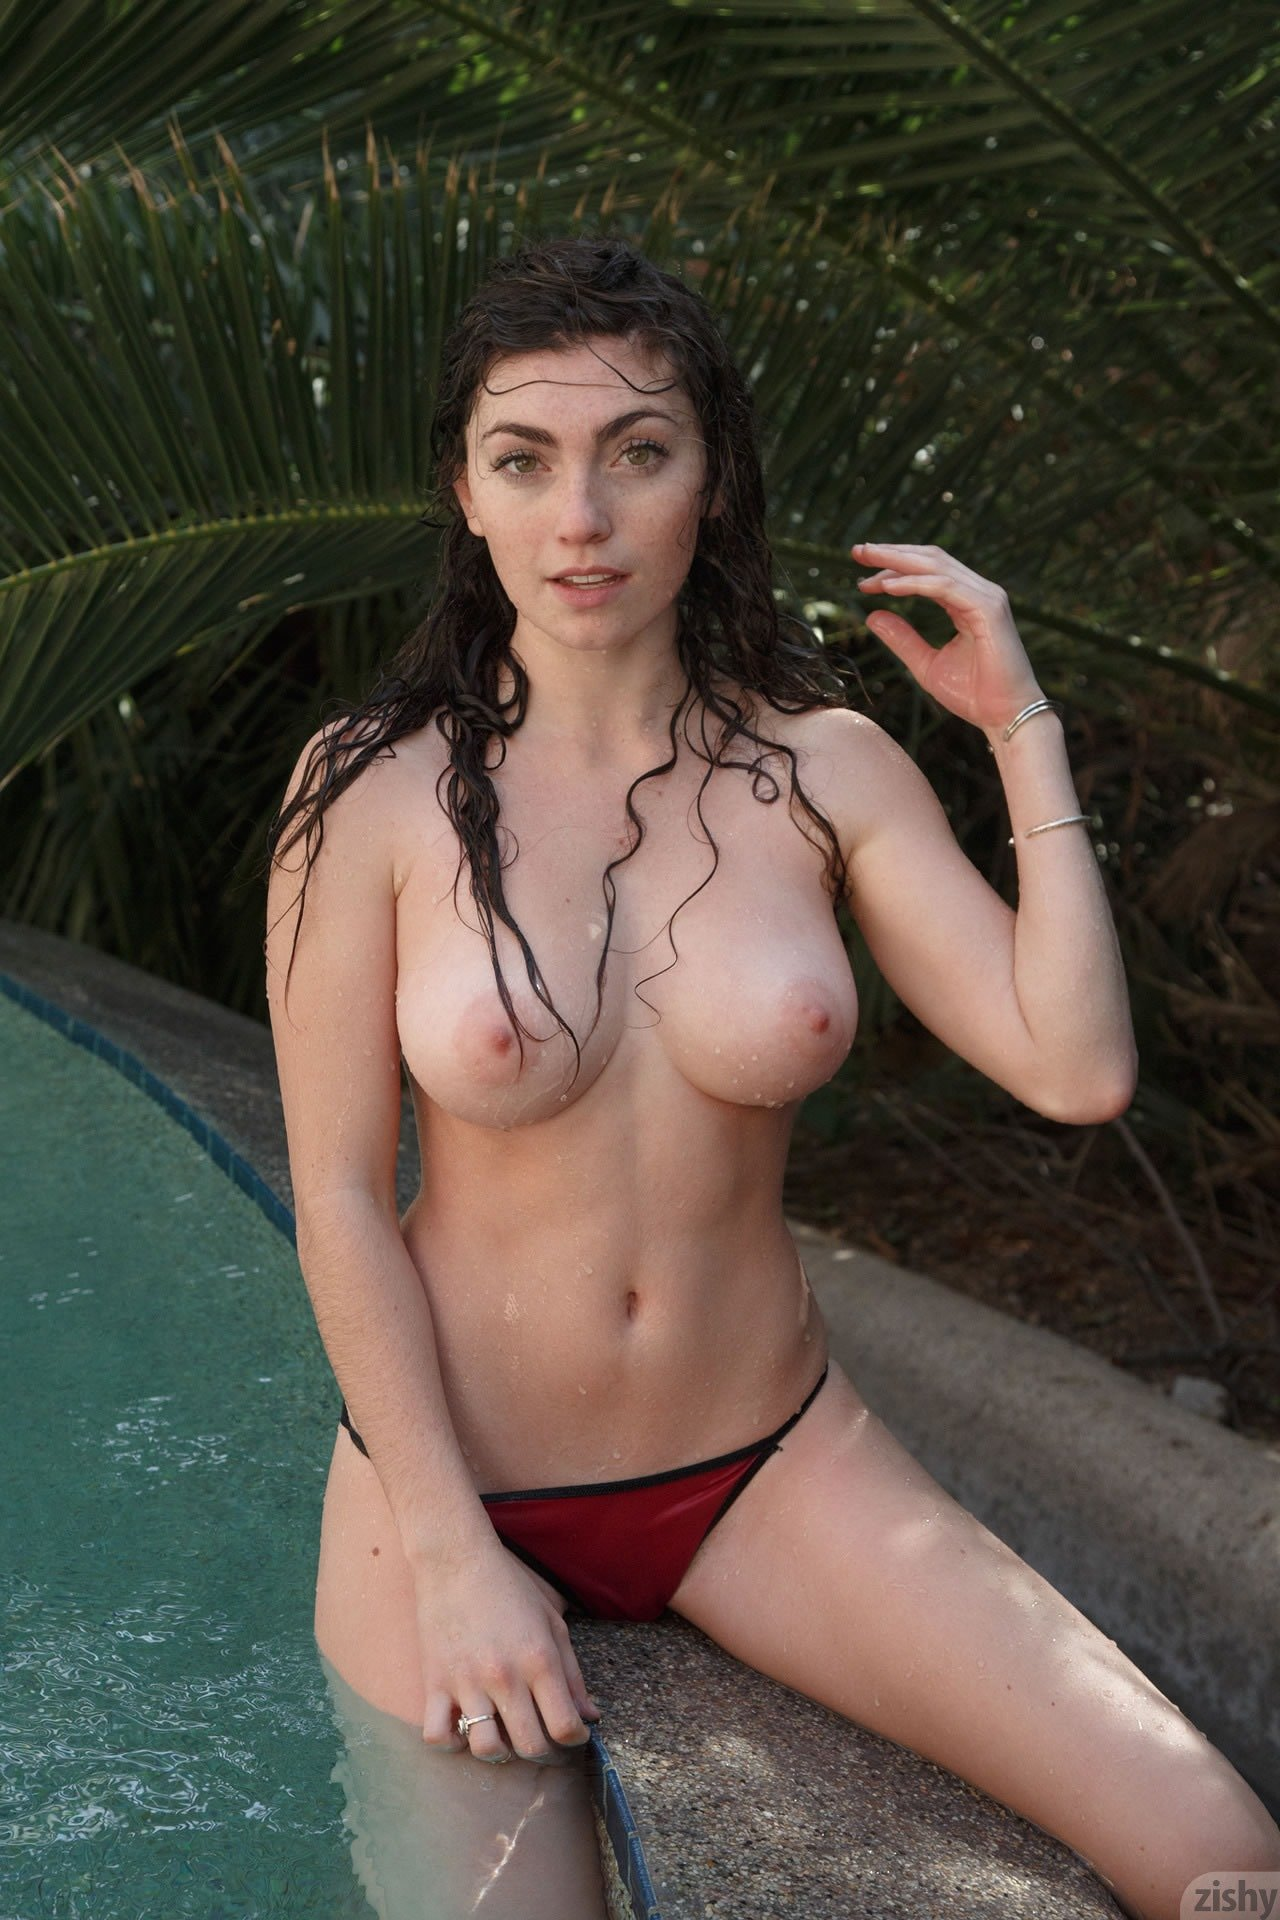 Alison gets wet and messy in the shower 3